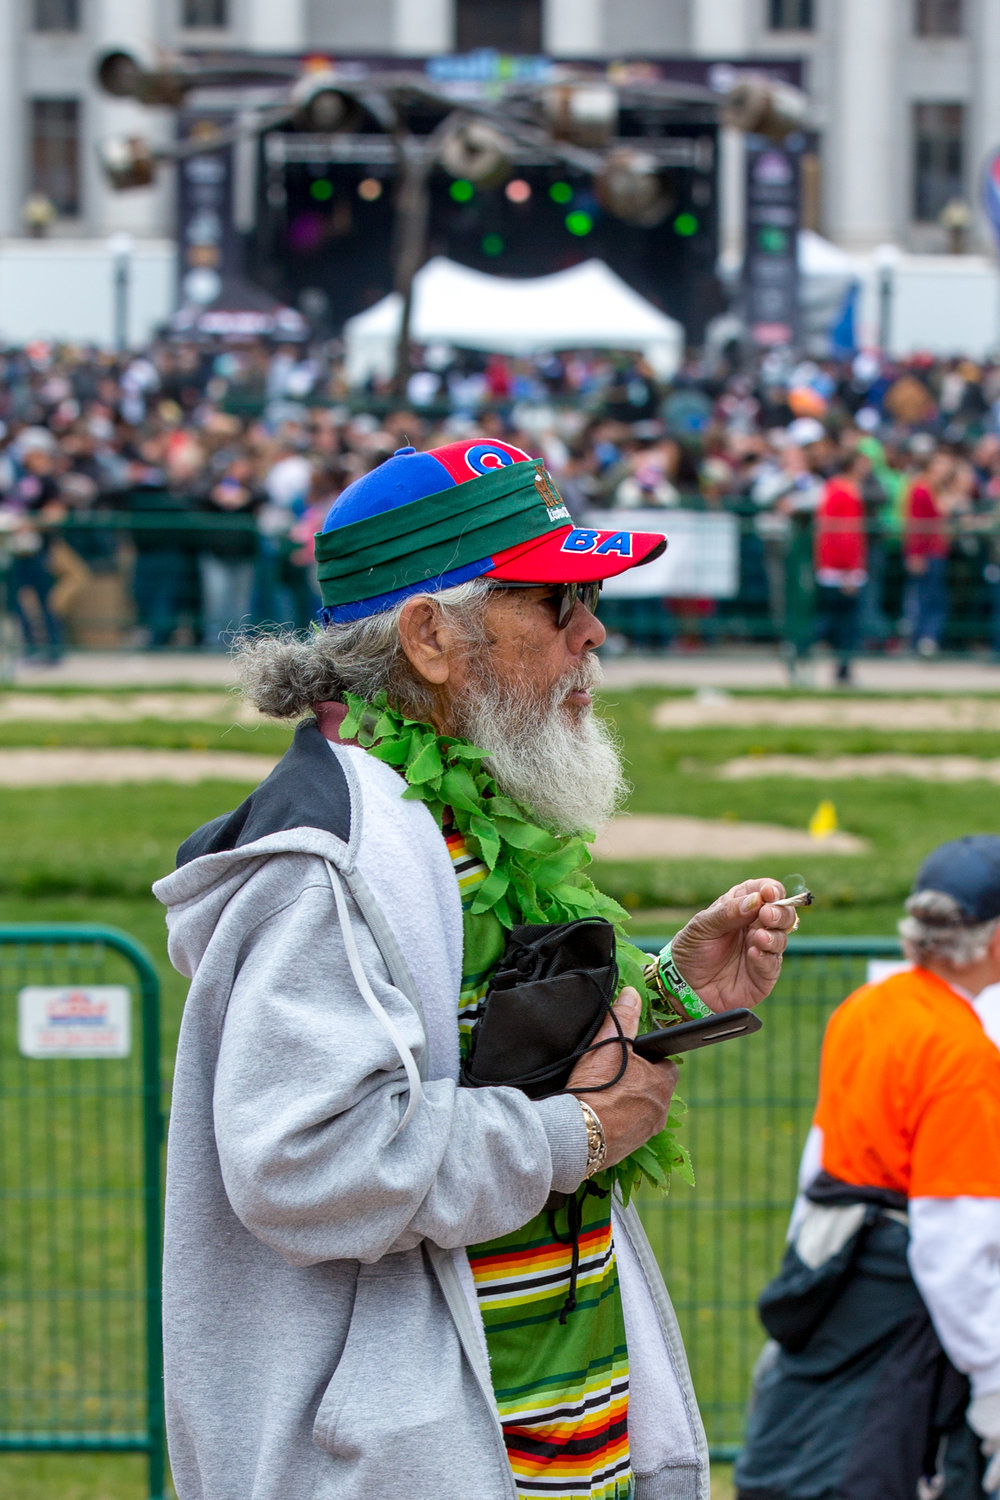 Mile High 420 Festival Civic Center Park Nikki A. Rae Photography 04.20.2018-17.jpg